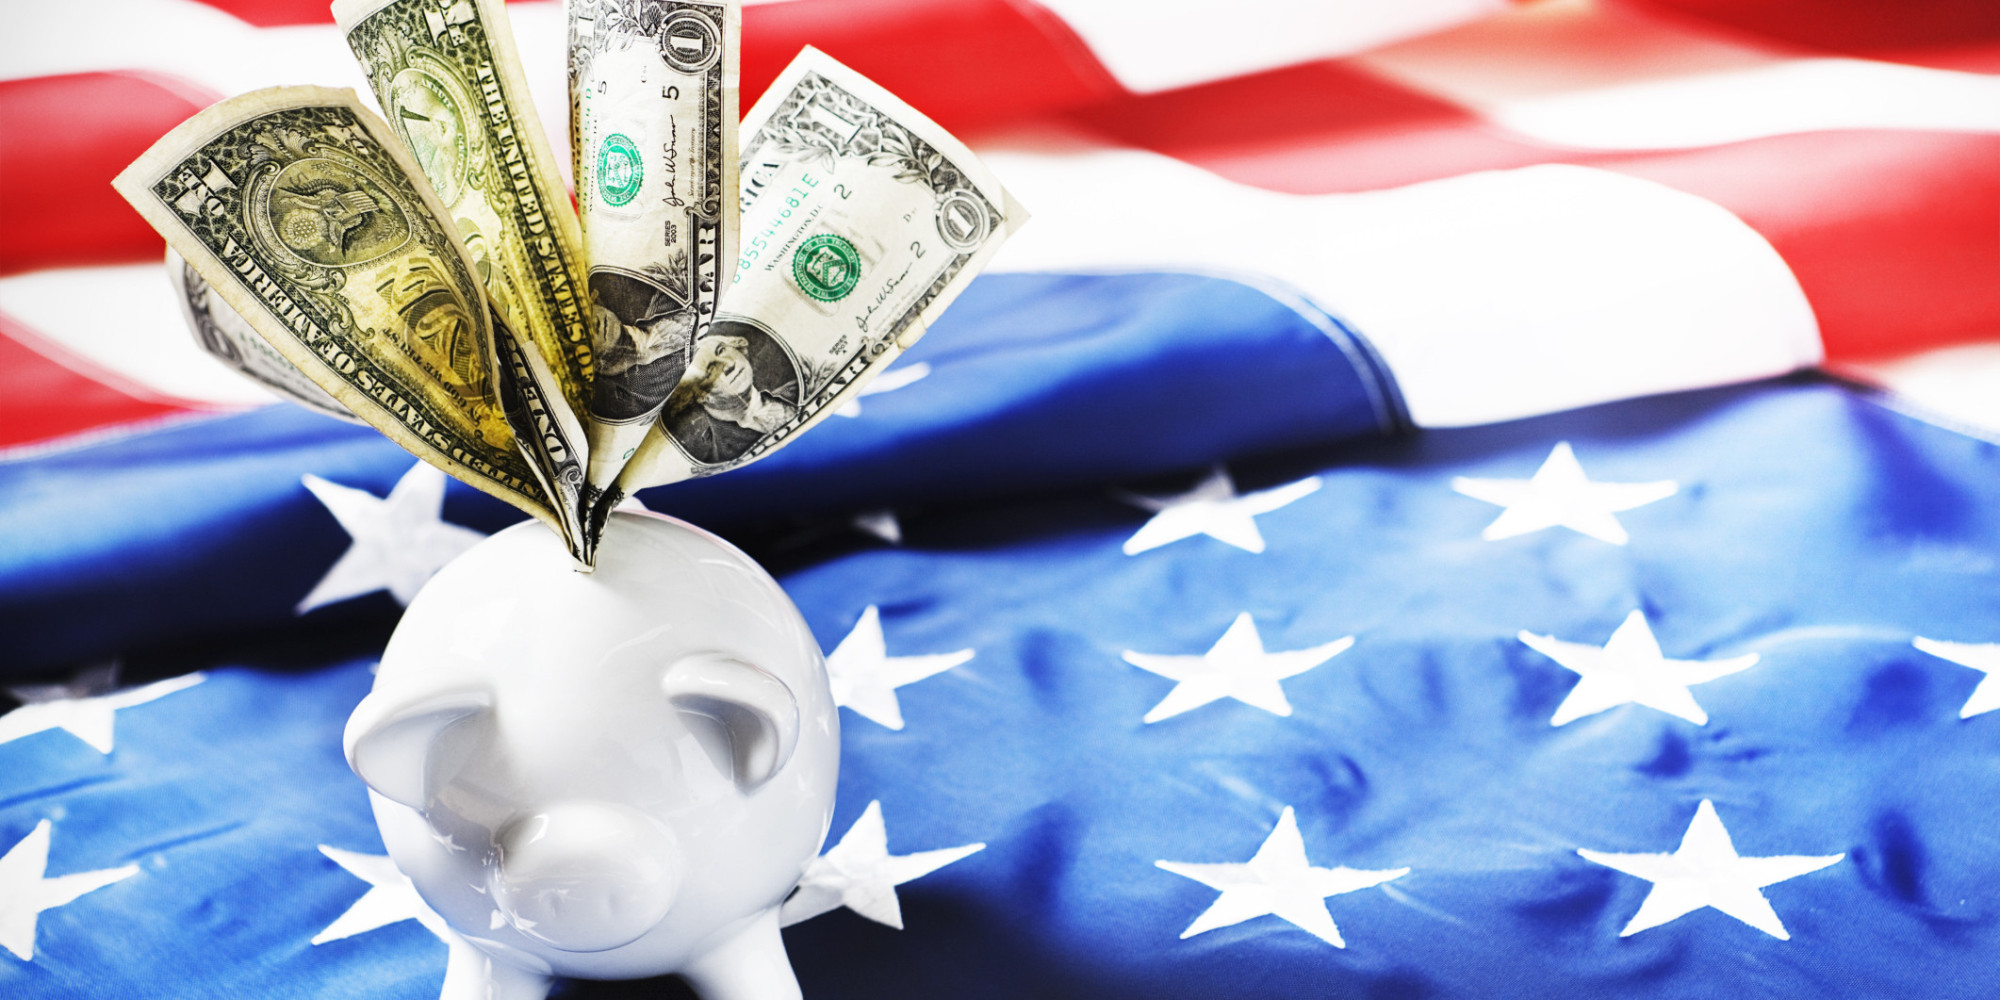 a us economy in modest rebound The us economy contracted in the first three months of the year, just not as much as previously estimated more recent data show that the weakness was largely temporary, with a rebound in the works for modest economic rebound expected data show winter slowdown not as bad as reported.